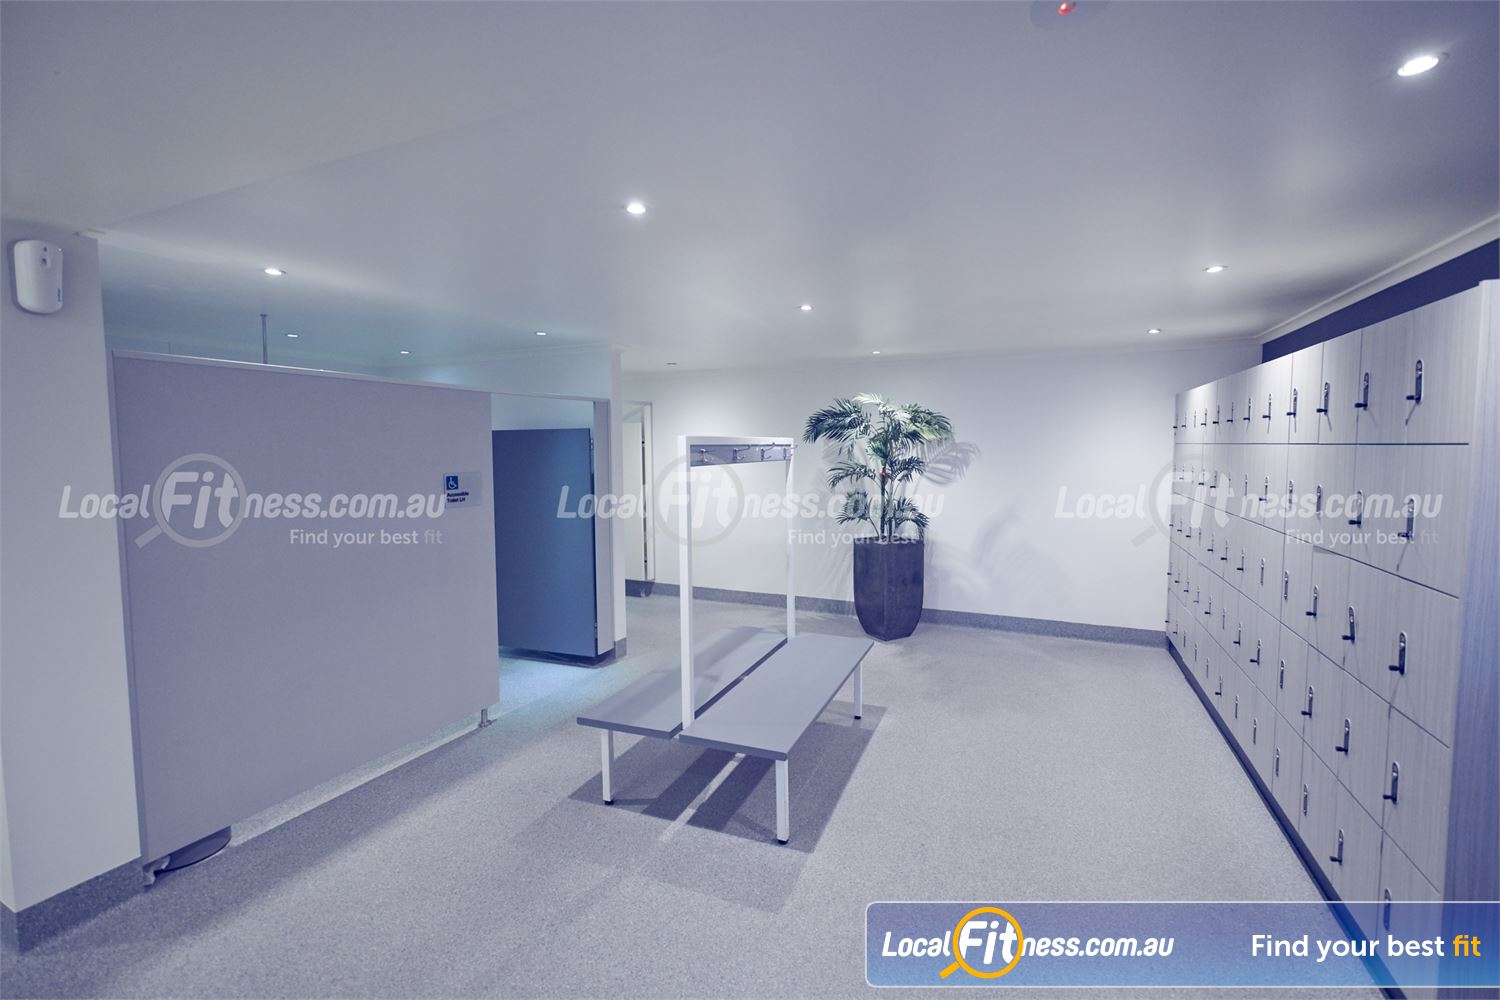 Fernwood Fitness Bulleen Our exclusive change rooms provide a Relaxing women's sanctuary.